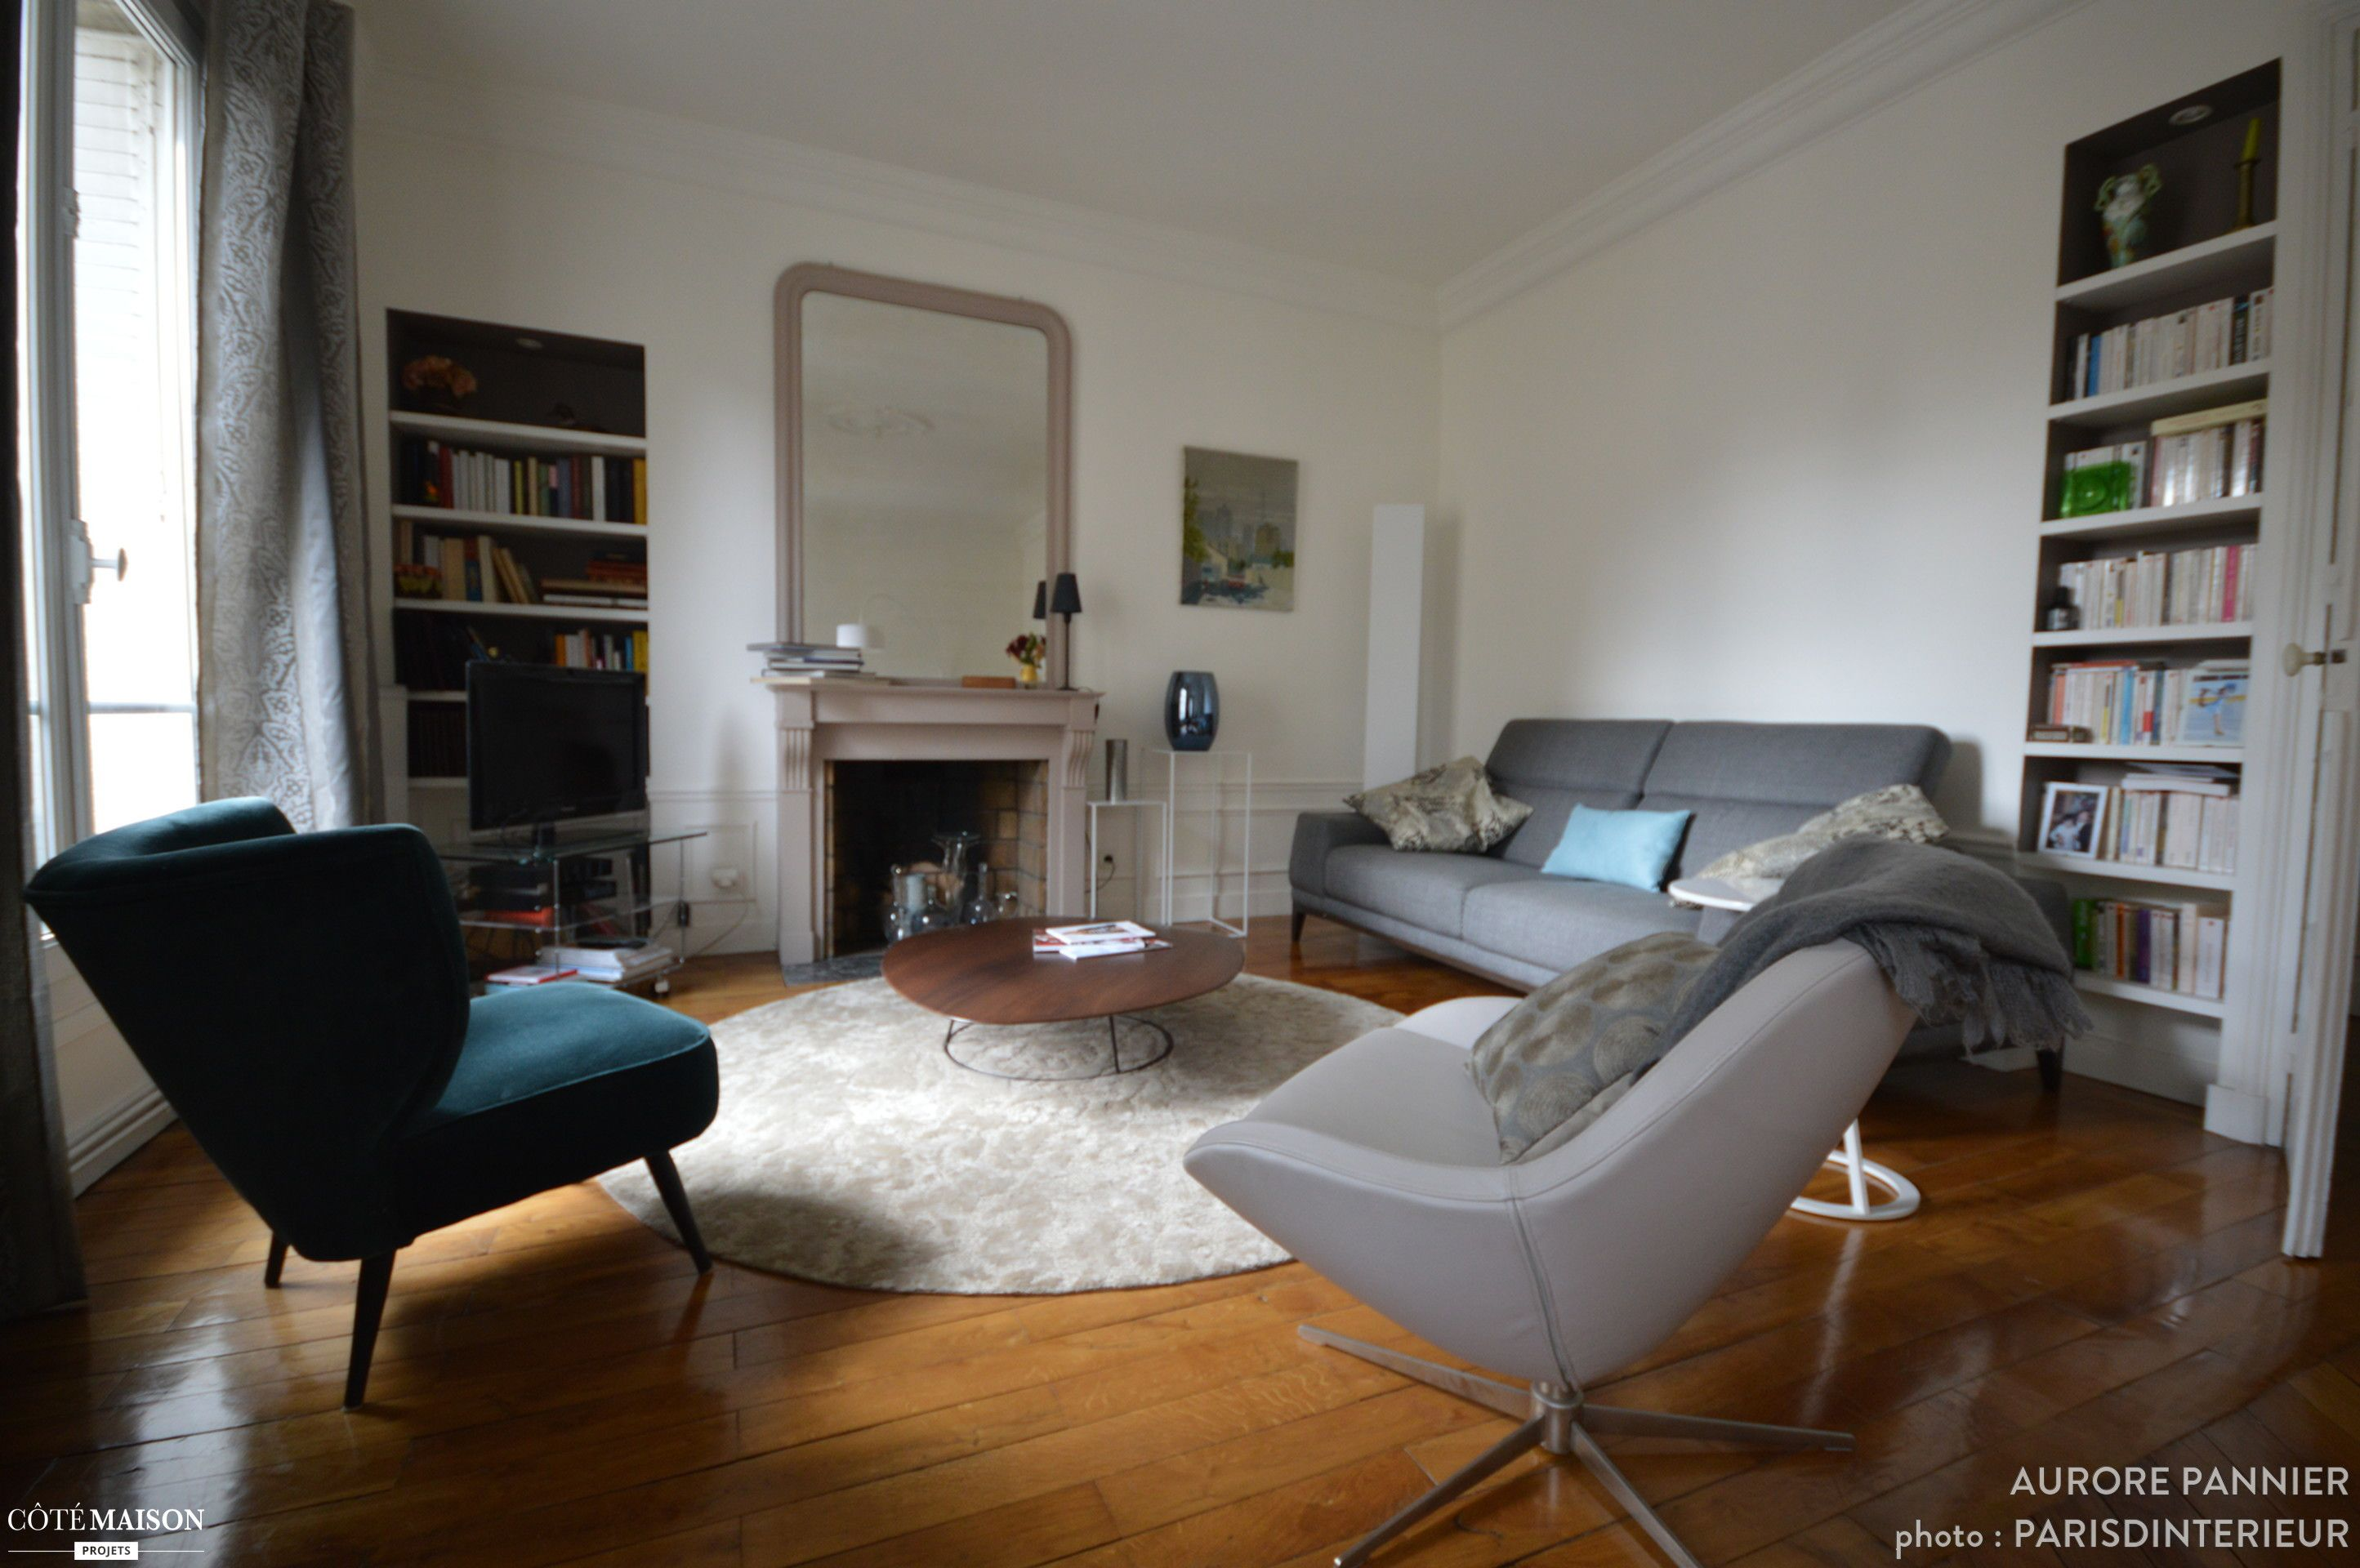 Salon contemporain dans appartement haussmannien avec parquet chemin e - Amenagement salon contemporain ...